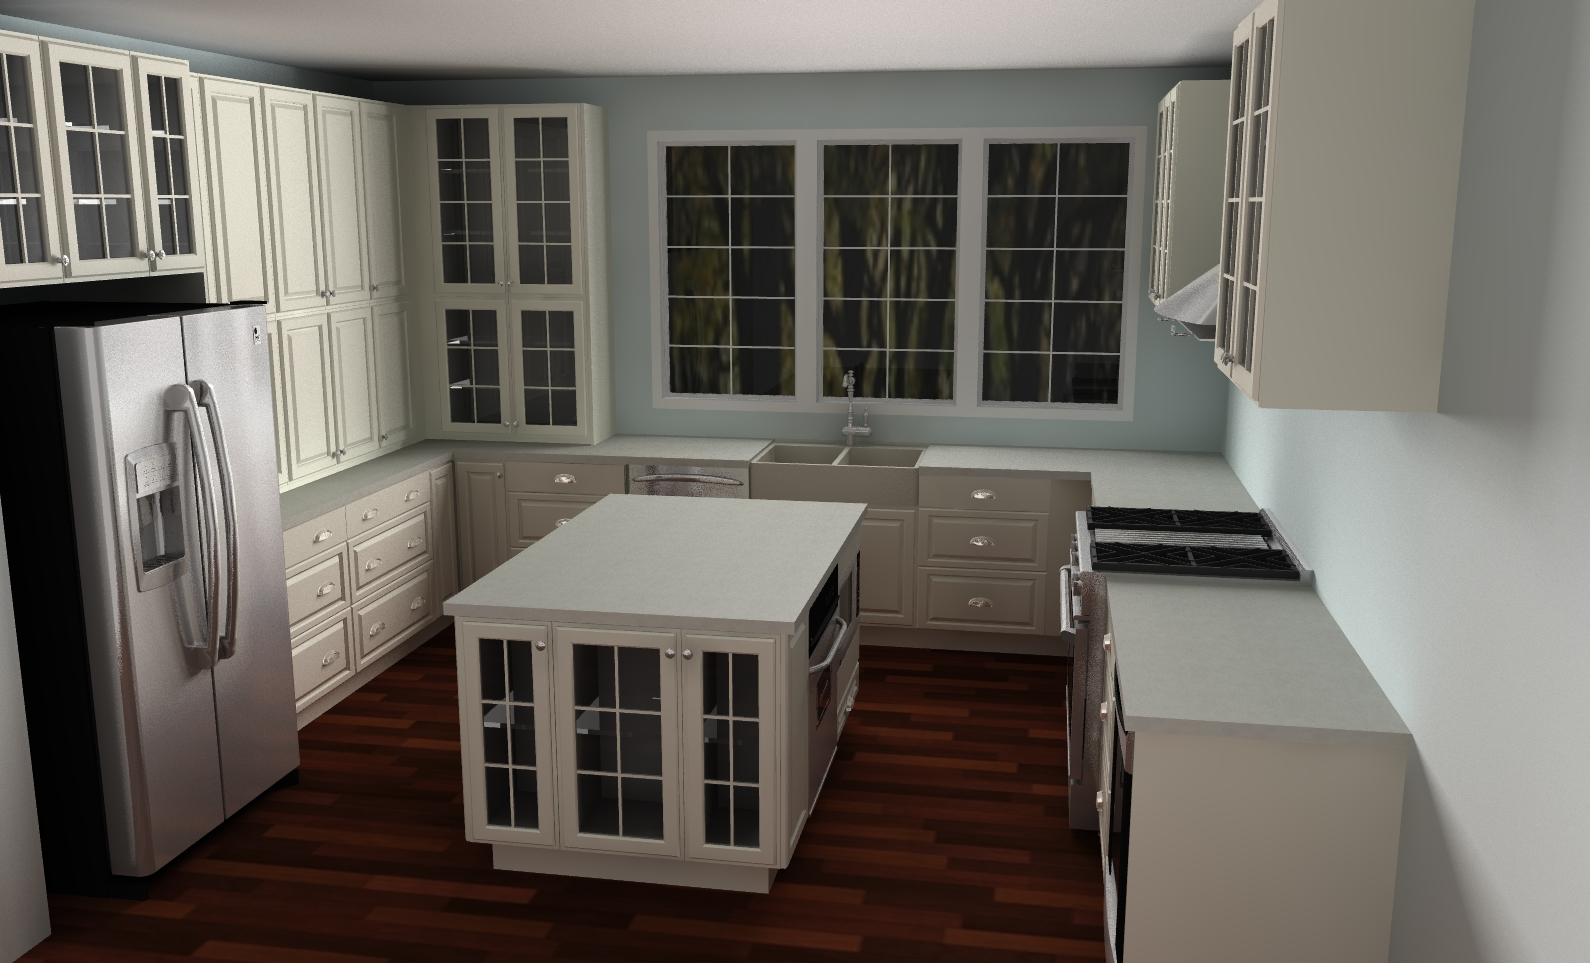 your ikea kitchen design can be as easy as 1 2 3 with ikd ikea kitchen design Cottage white IKEA kitchen in Australia